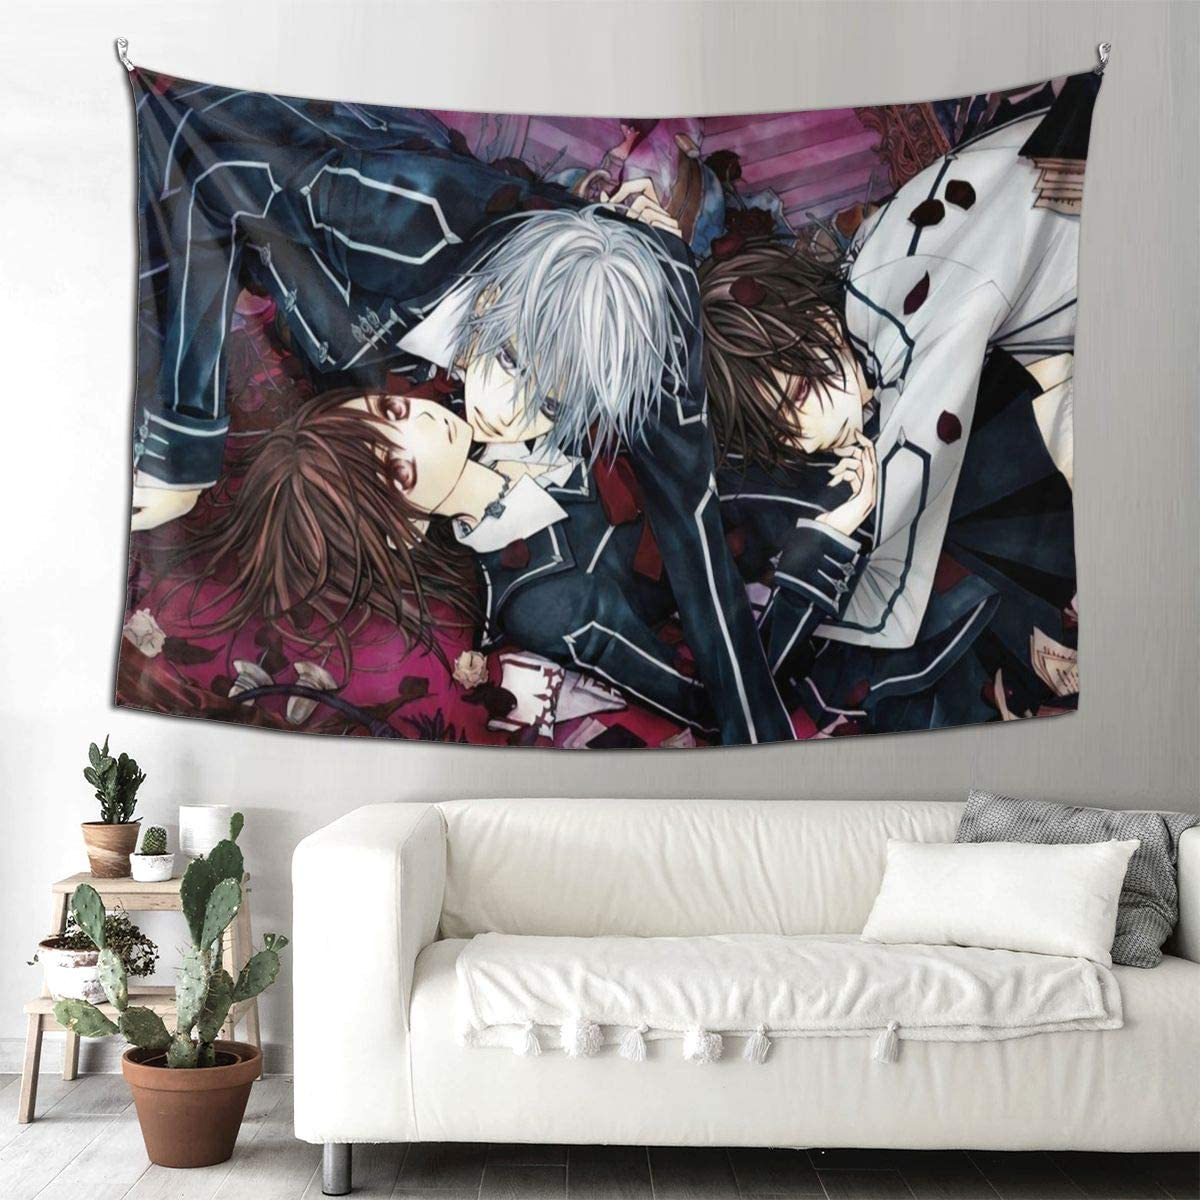 Vdsdsf Vampire Knight Tapestry Wall Tapestry for Bedroom Living Room Blanket Wall Hanging Decoration for Apartment Home Art 90 60 in